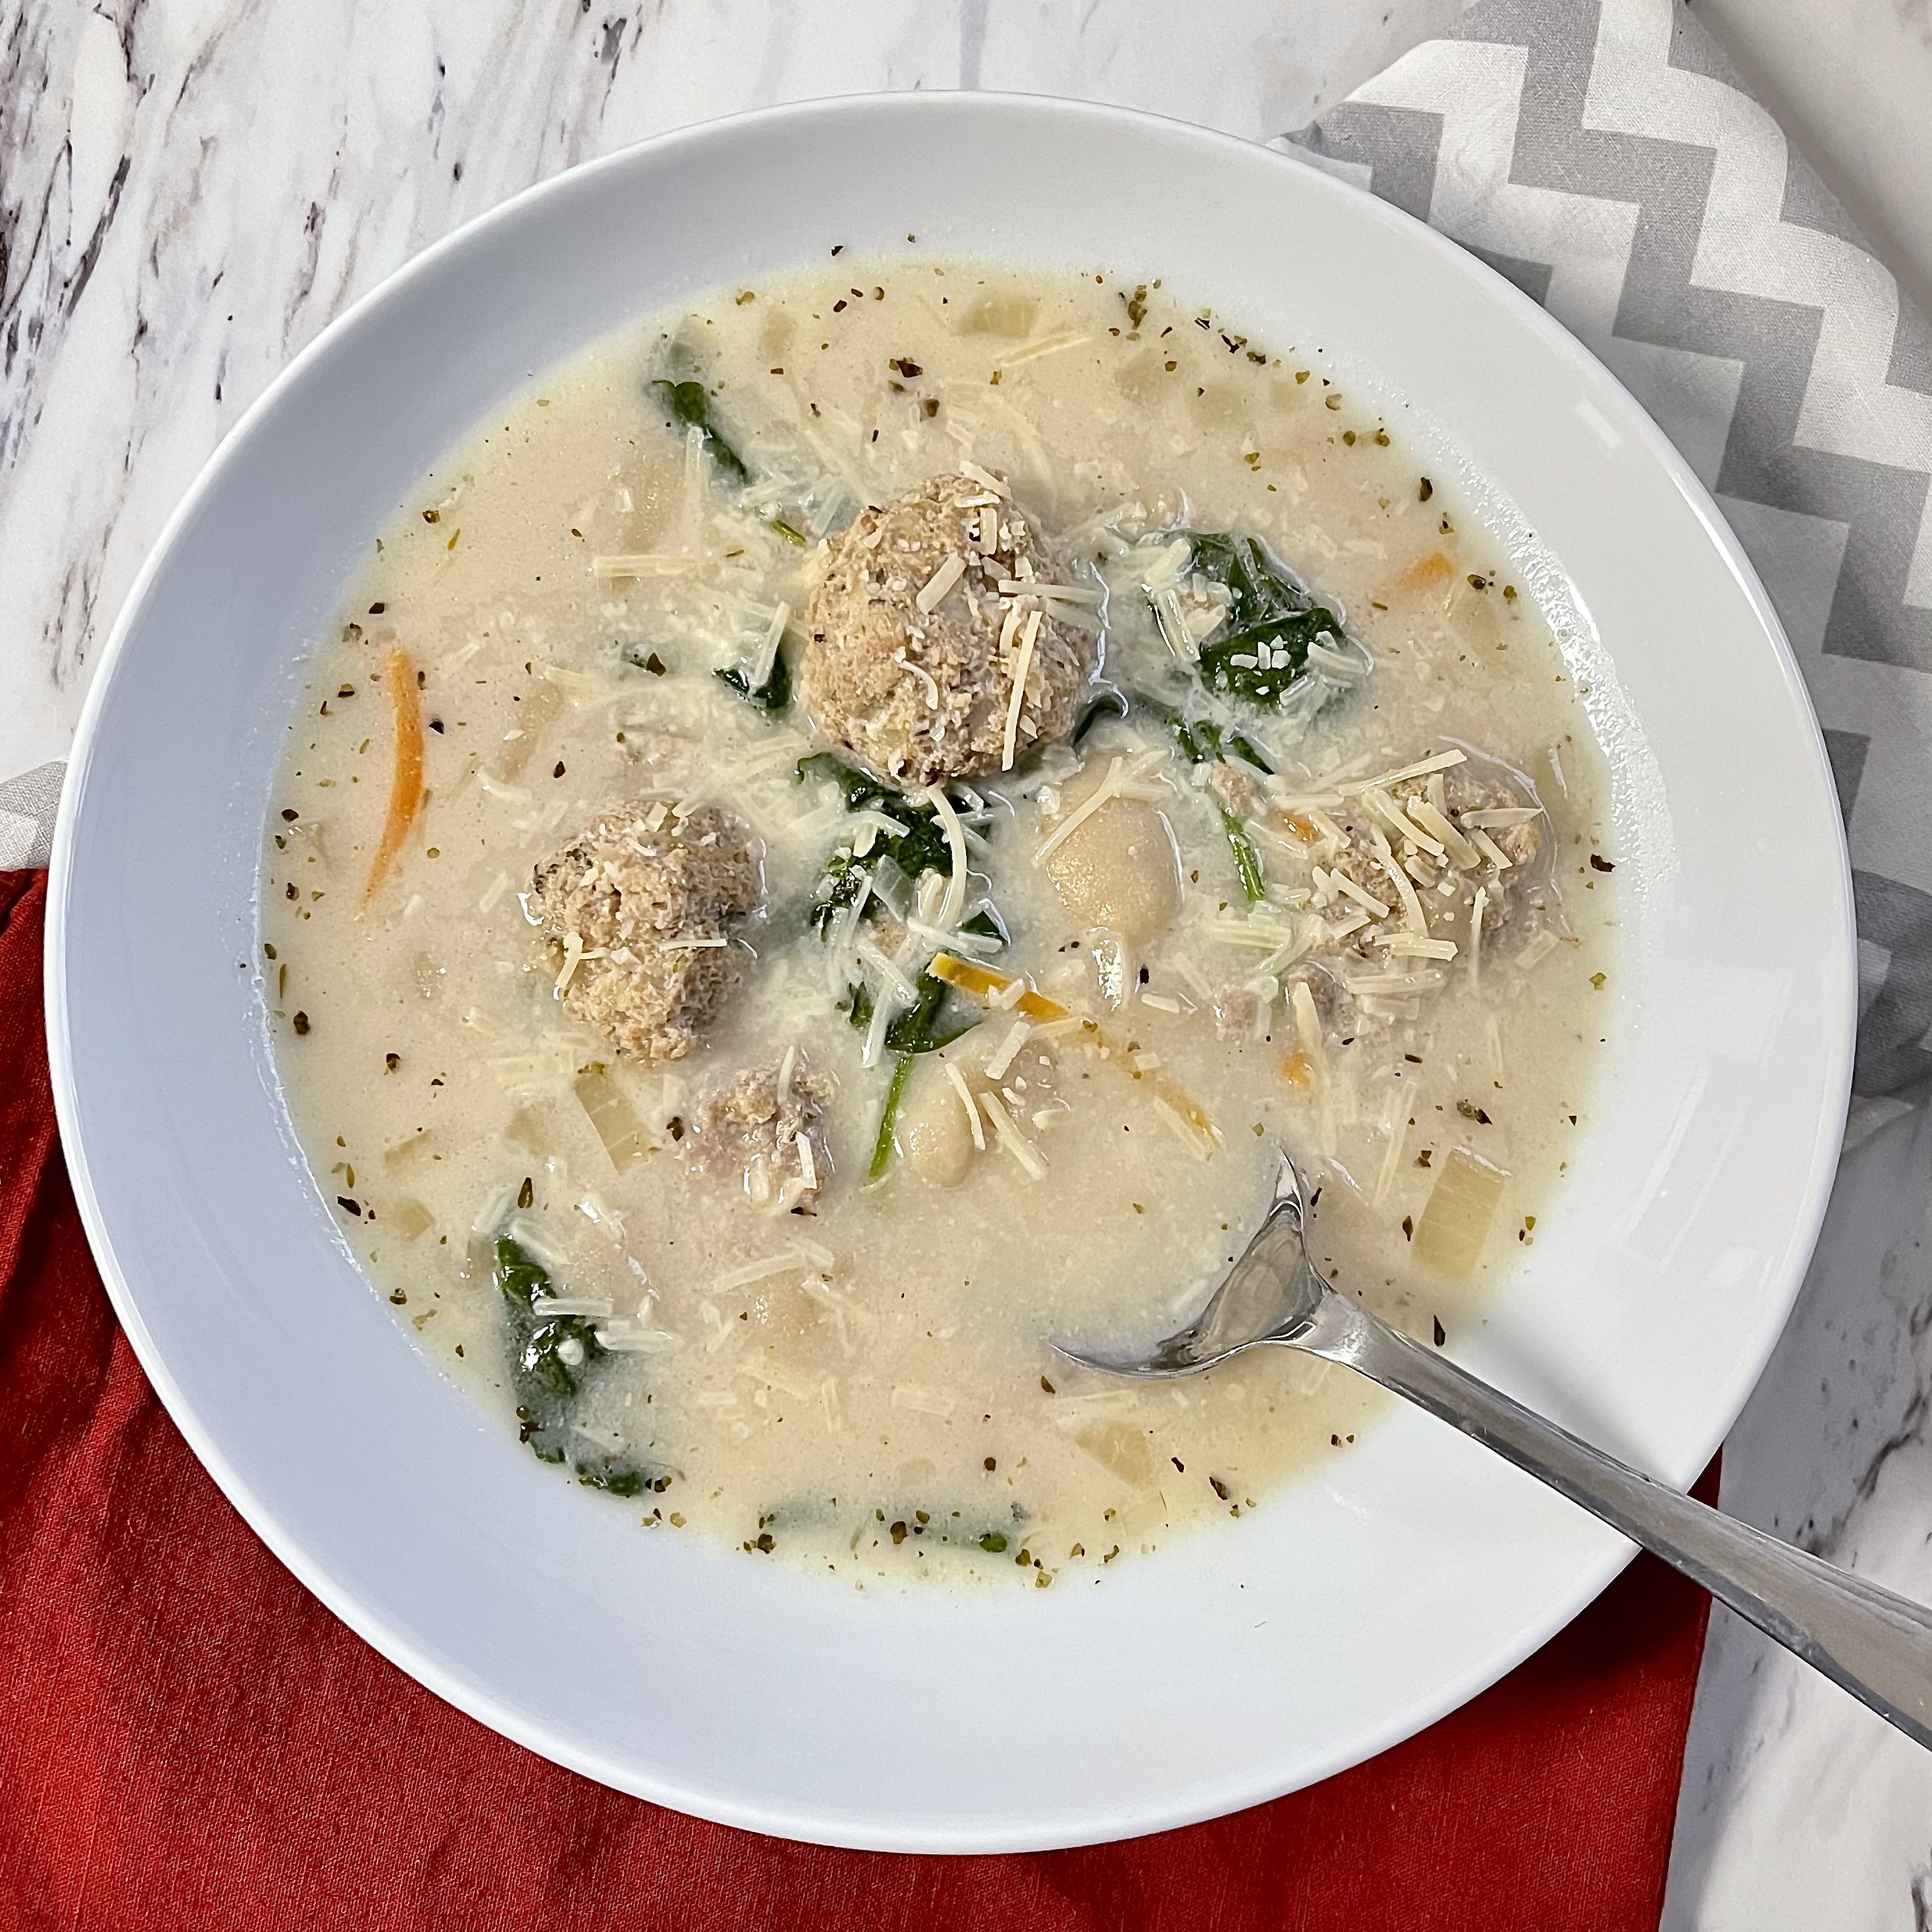 Gnocchi, Spinach, and Meatball Soup